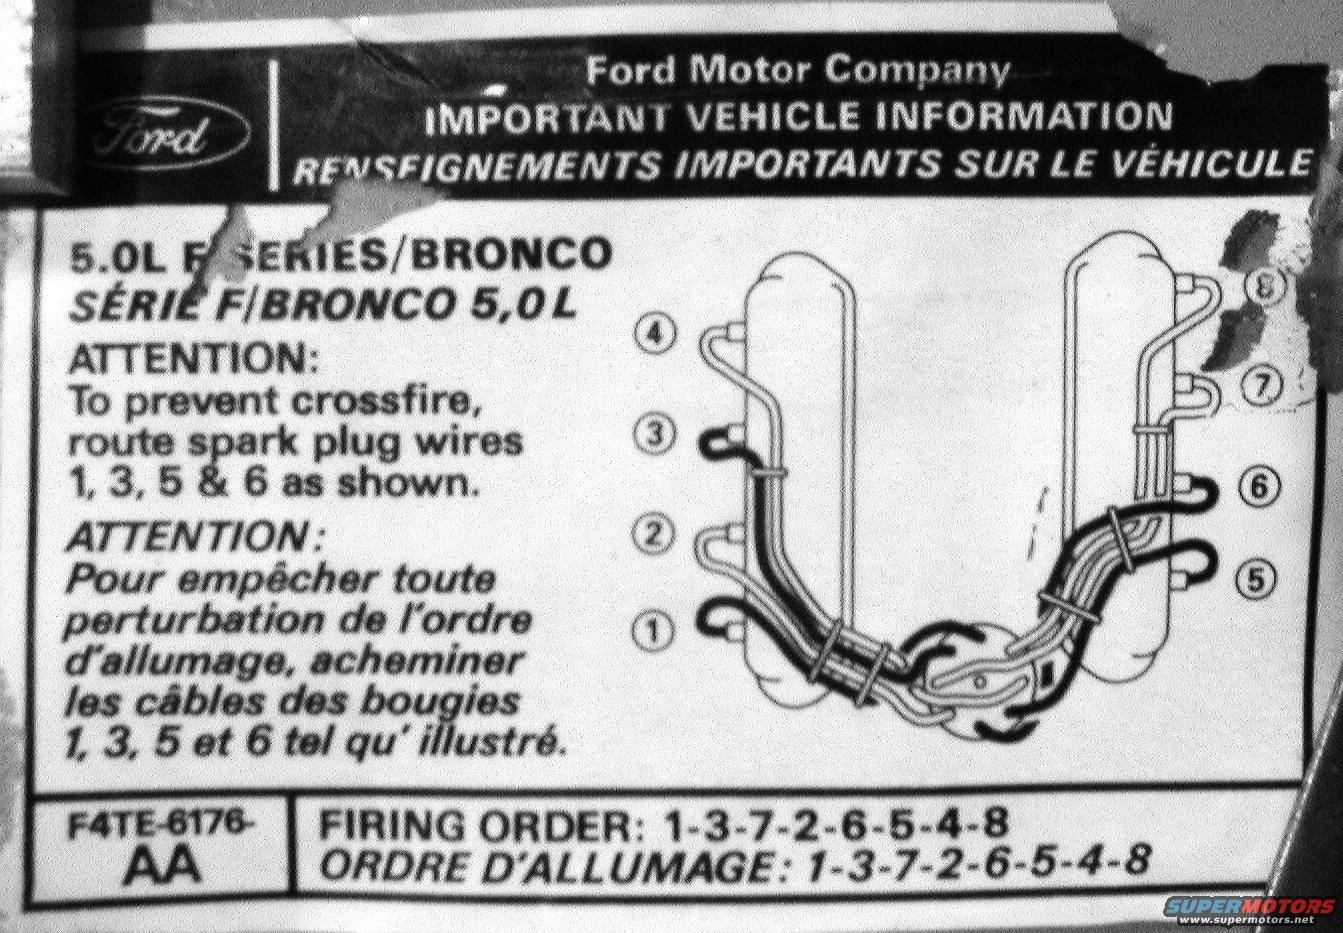 Ford 302 Spark Plug Wiring Diagram Smart Diagrams 2004 Freestar Firing Order 1983 Bronco Picture Supermotors Net Rh 2005 Escape